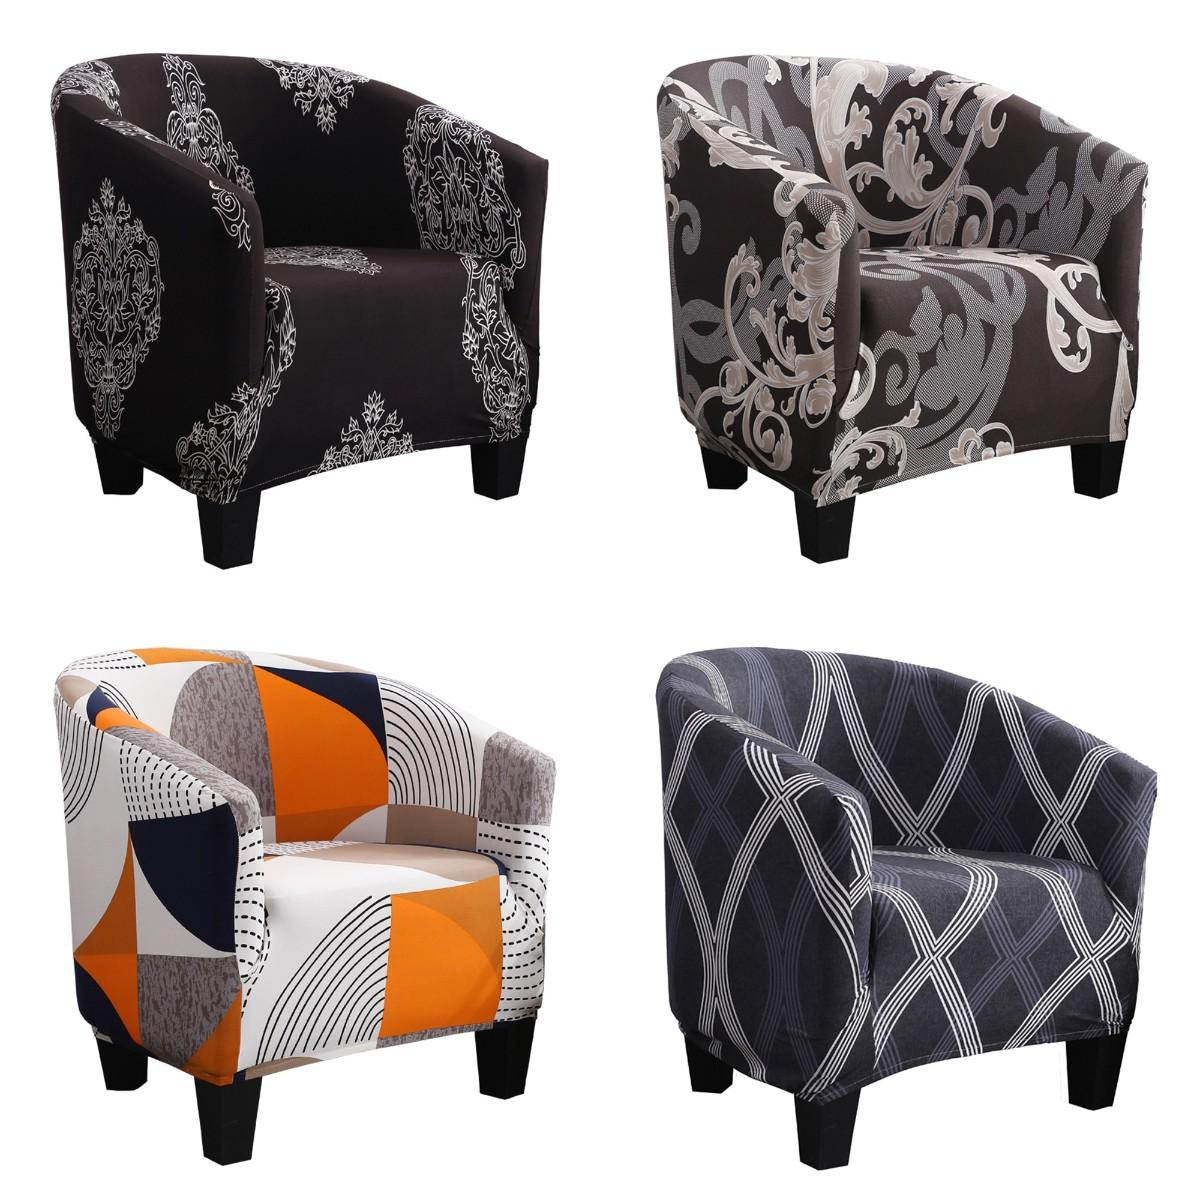 one-seater chair cover armchair slipcover for club cafe bar decorations